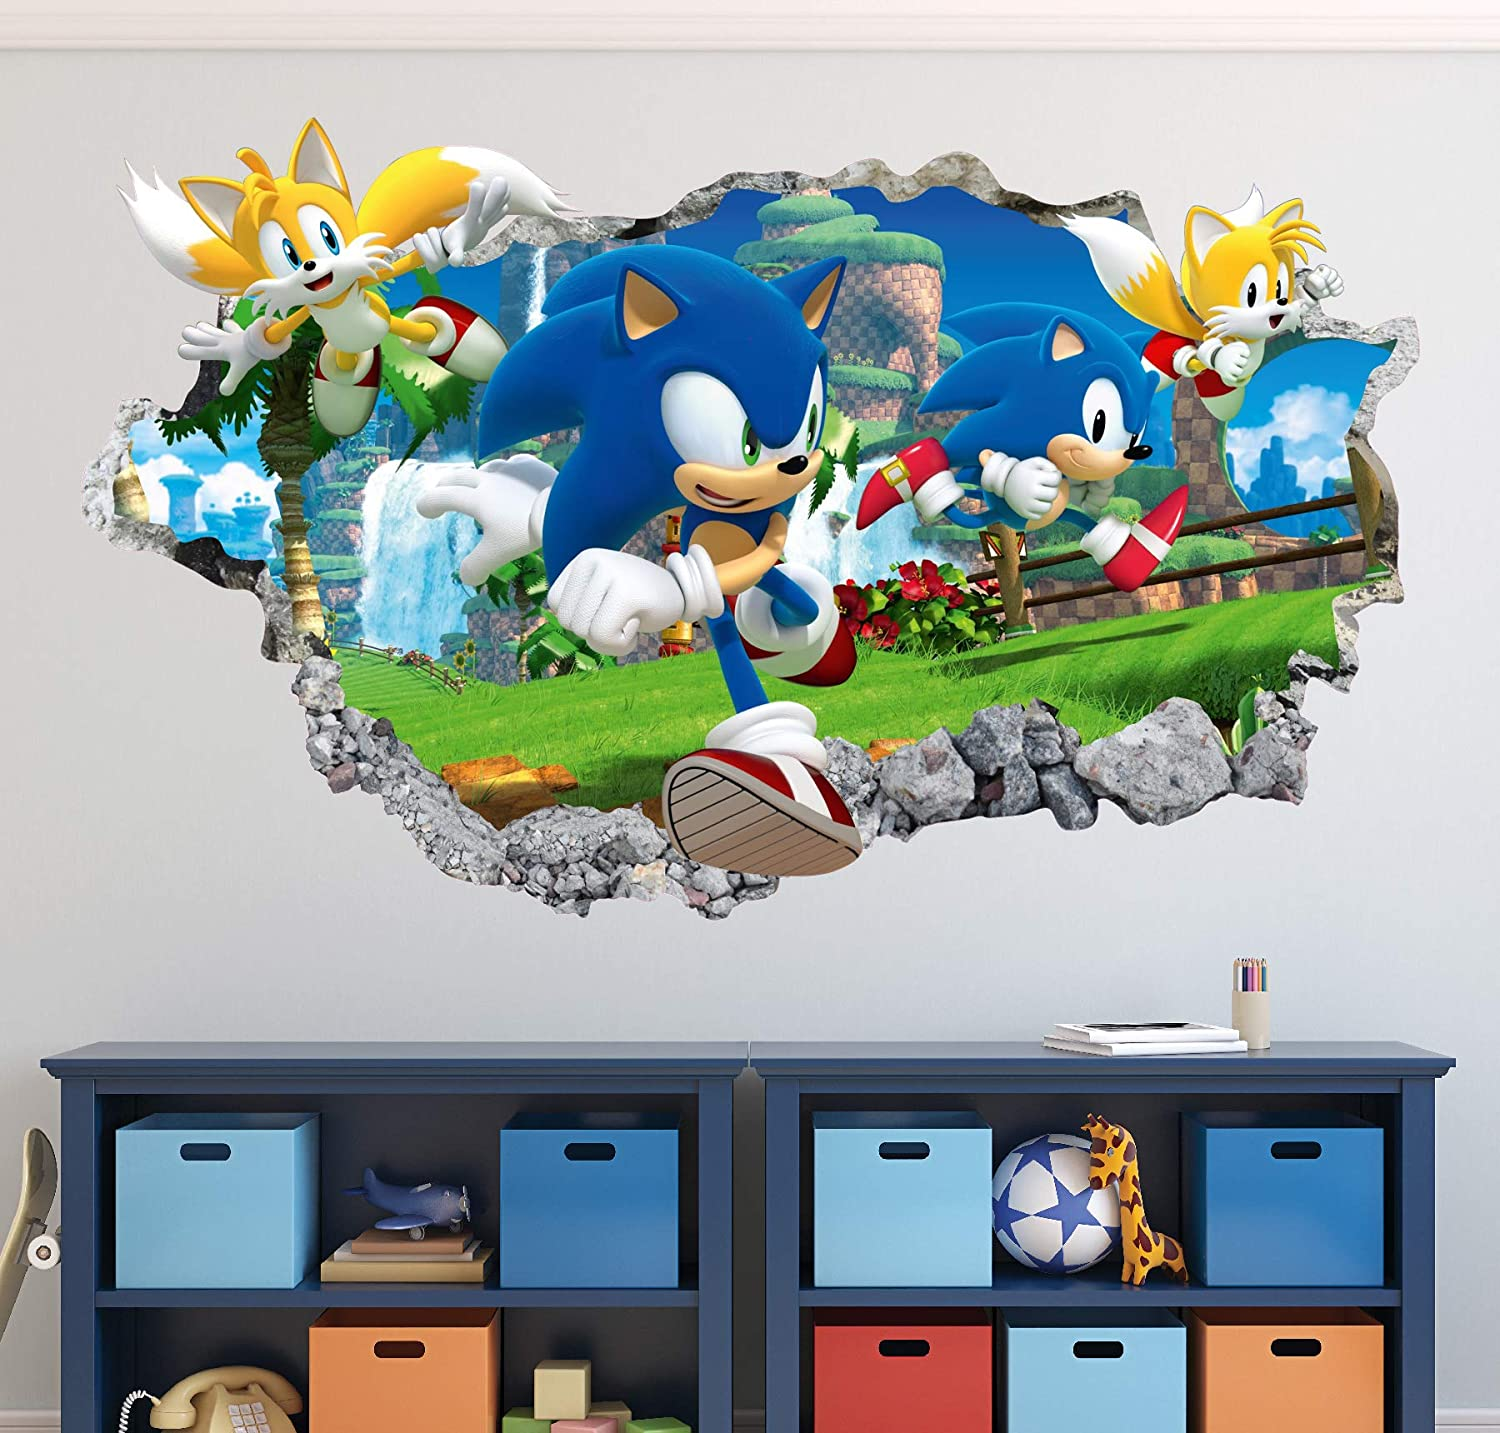 Amazon Com Sonic Wall Decal Art Decor 3d The Hedgehog Smashed Sticker Kids Mural Poster Gift Ha22 30 W X 18 H Home Kitchen